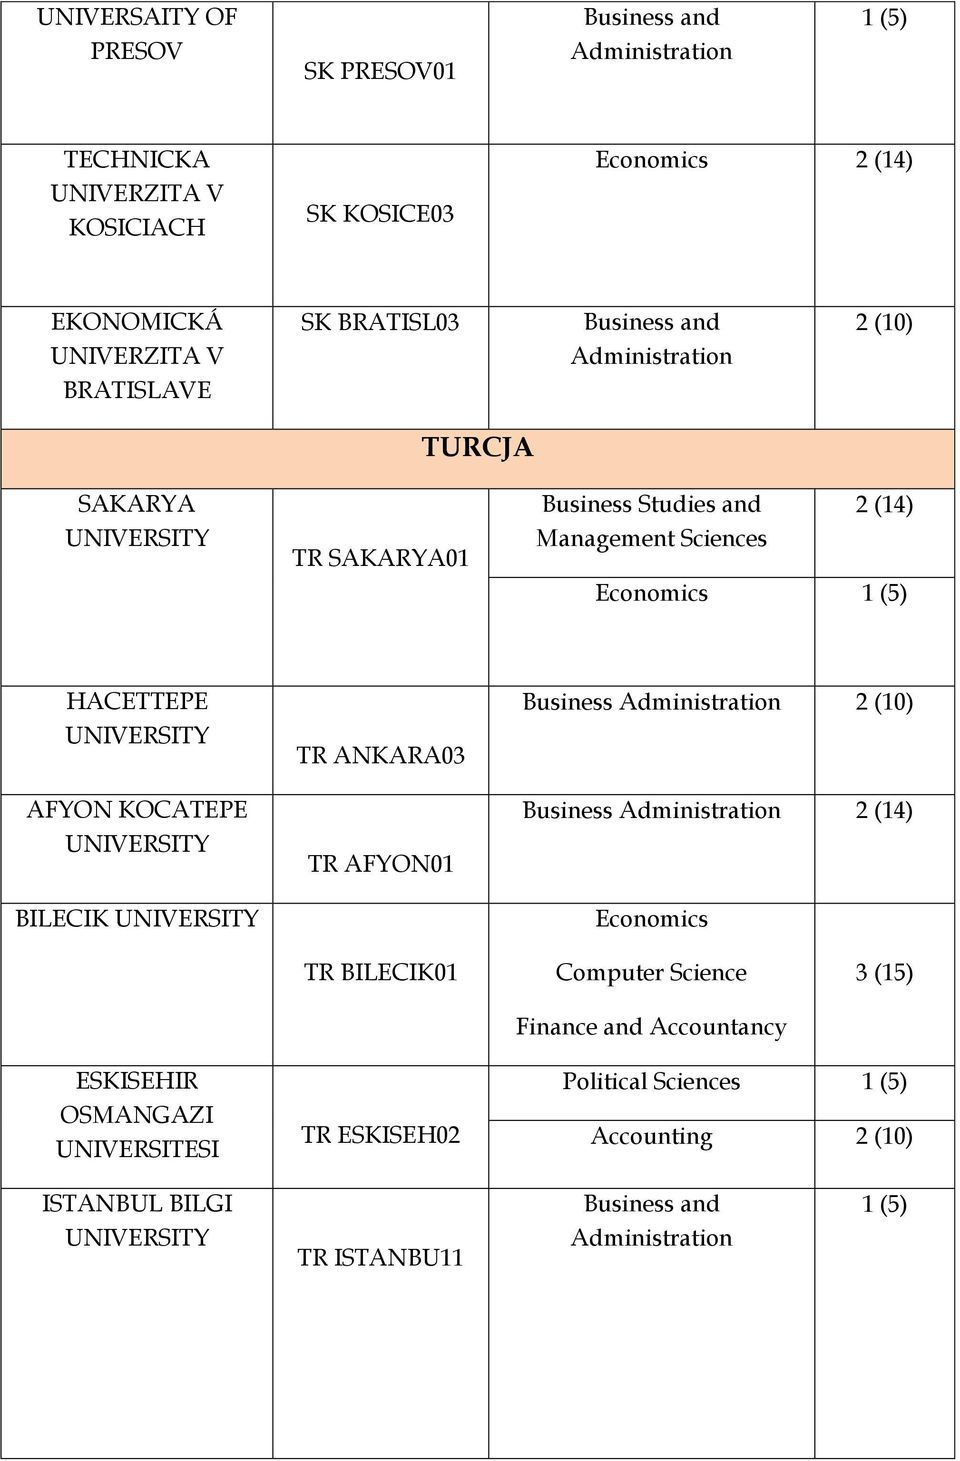 AFYON KOCATEPE BILECIK TR ANKARA03 TR AFYON01 Business Business 2 (14) Economics TR BILECIK01 Computer Science Finance